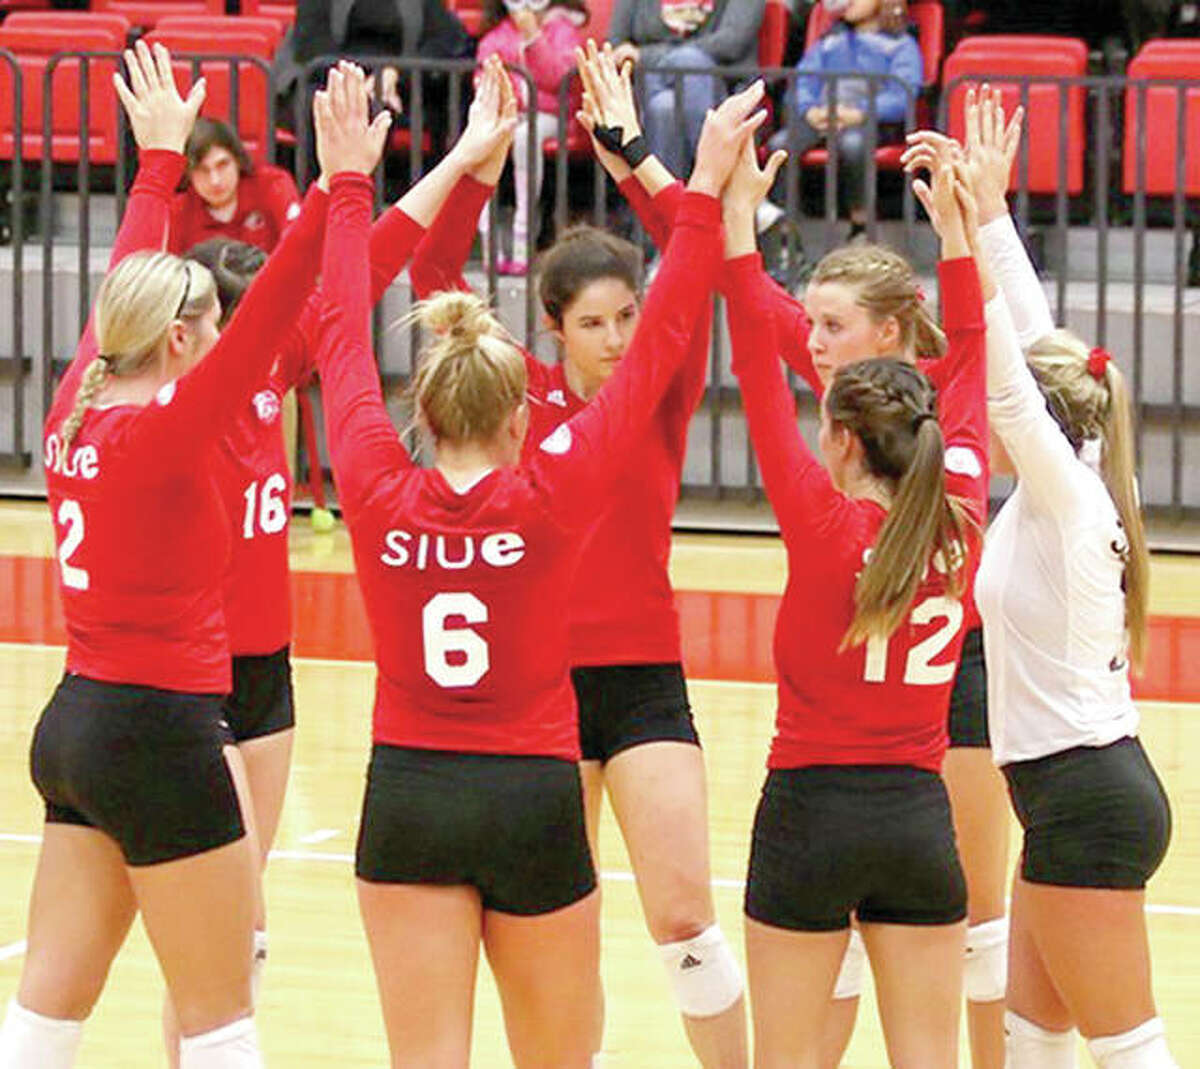 The SIUE volleyball team was ousted from the National Invitational Volleyball Championship by Arkansas 25-21, 28-30, 29-27, 27-25 Wednesday at Ole Miss.